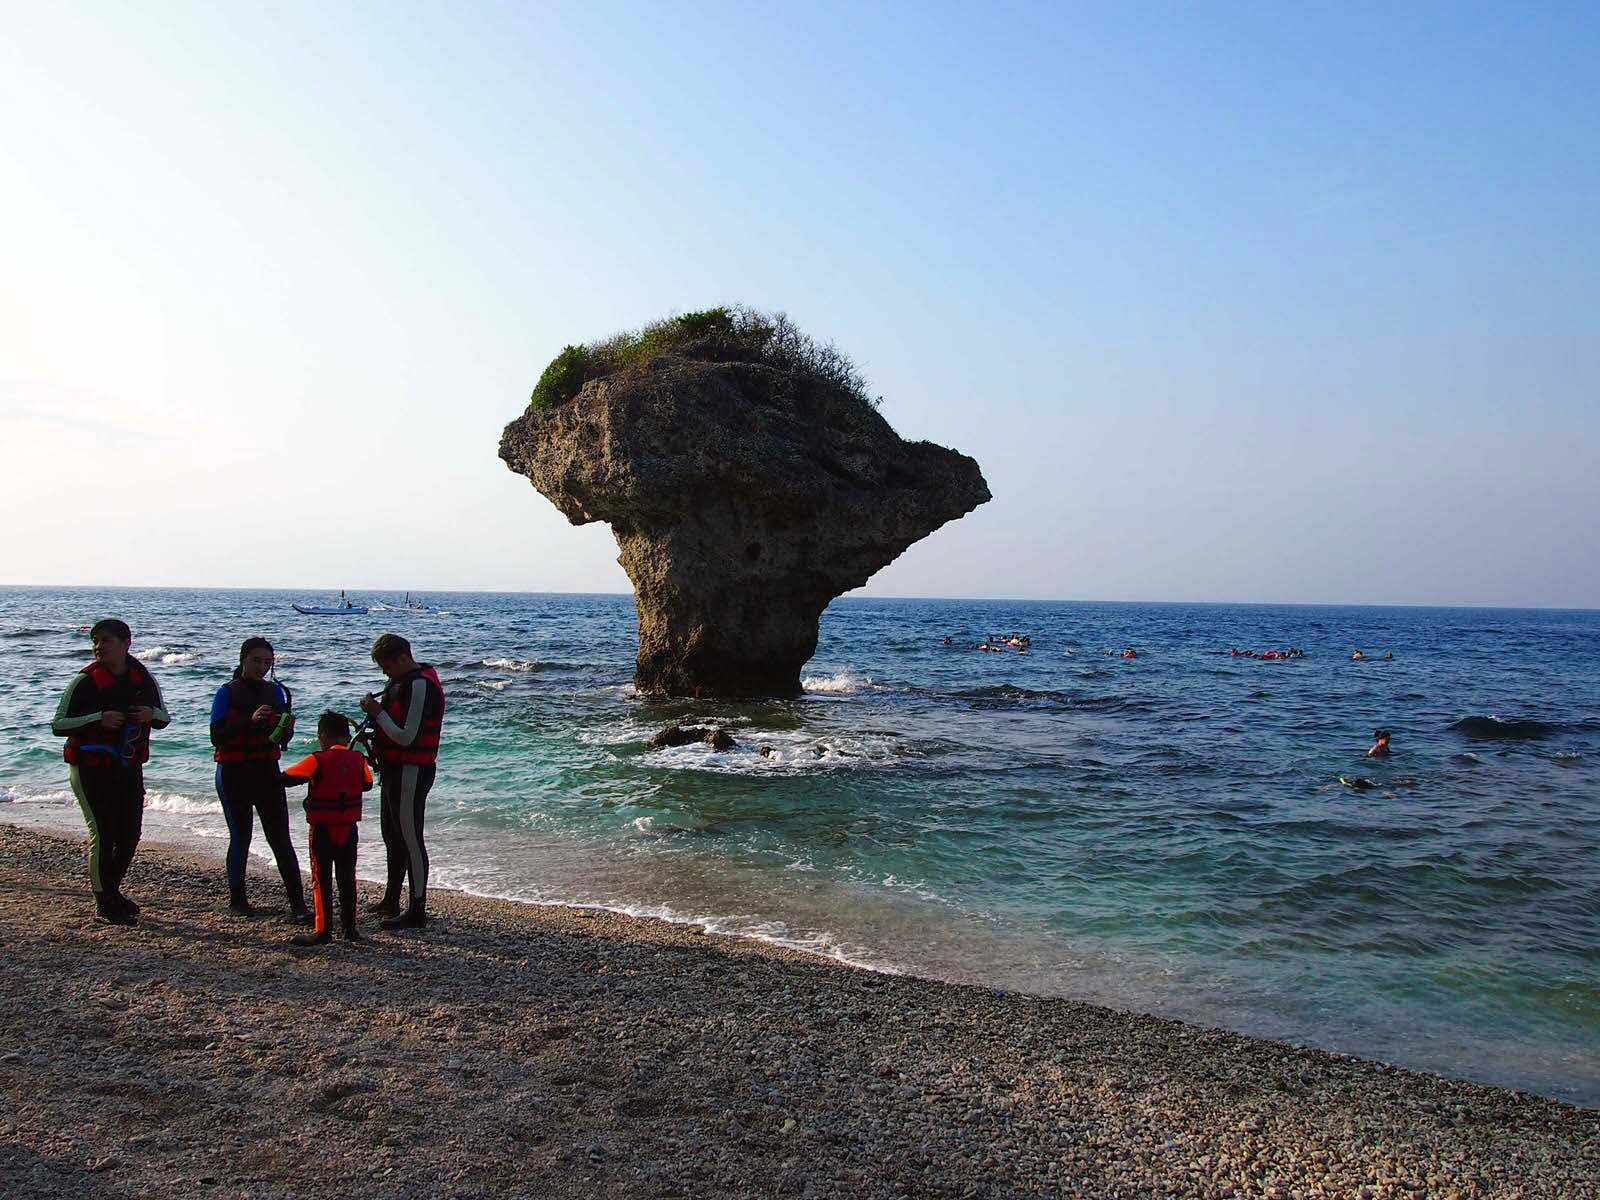 A family prepares to go snorkelling on the beach in front of Vase Rock. The waters around Vase Rock are the most popular place for snorkelling © Tess Humphrys / Lonely Planet